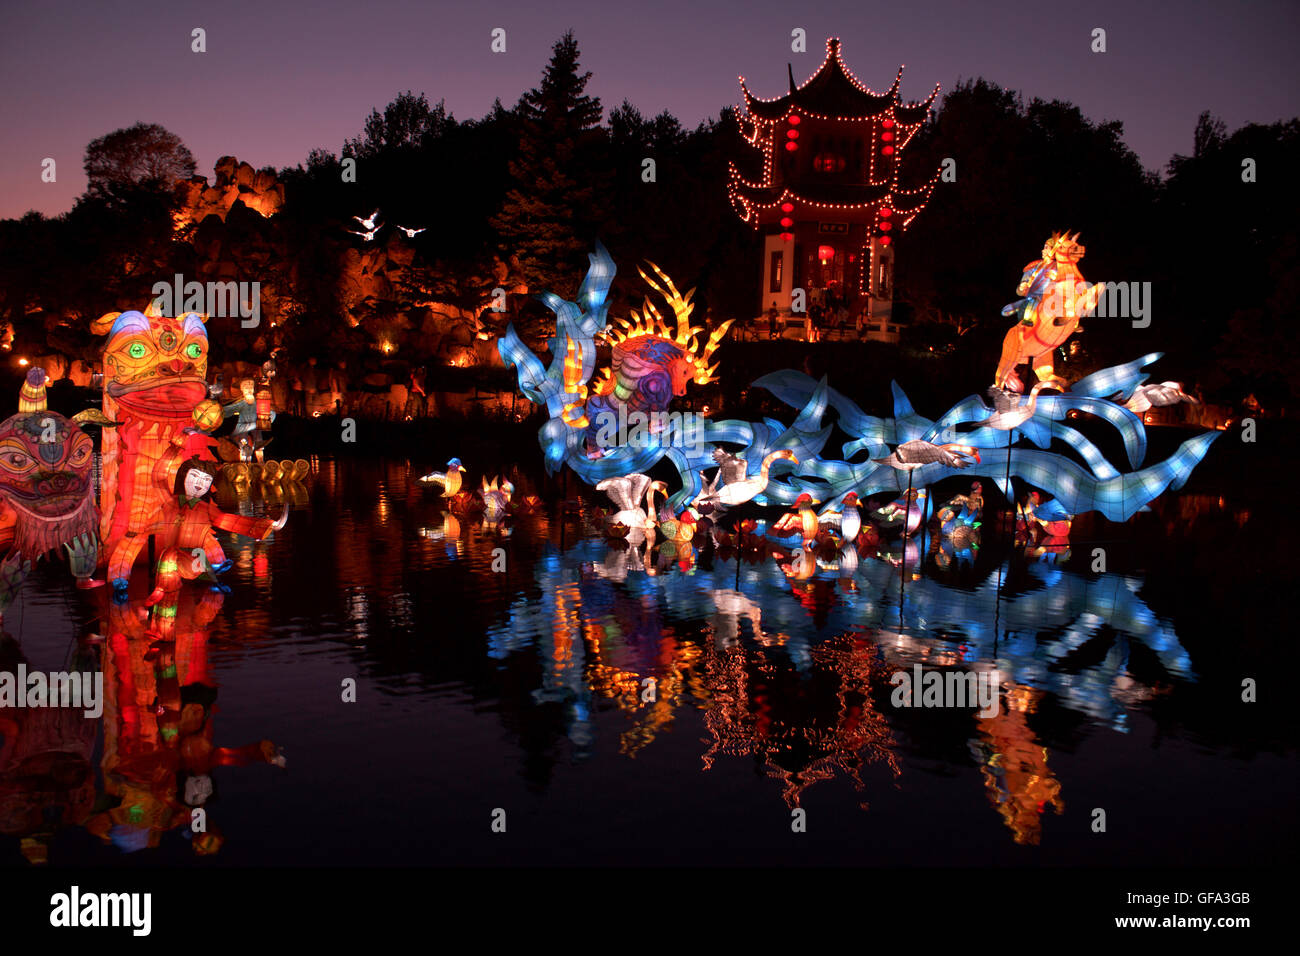 Chinese Lanterns at the Montreal Botanical Gardens. Quebec - Canada. Mythical Creatures - Stock Image